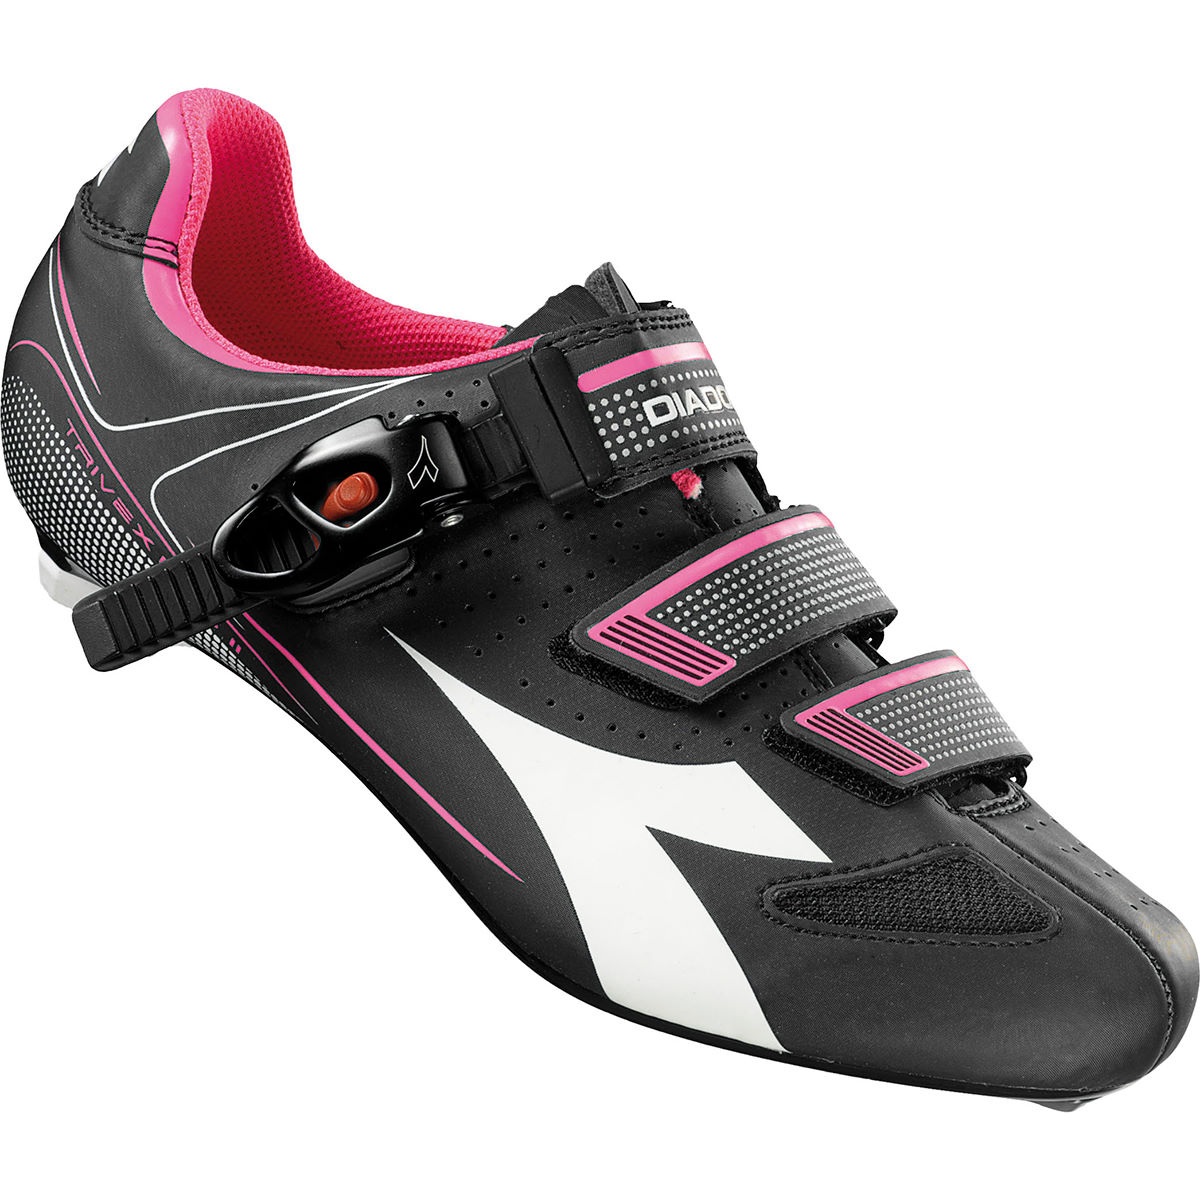 Diadora Trivex Plus II Womens SPD-SL Road Shoes - Zapatillas para bicicletas de carretera